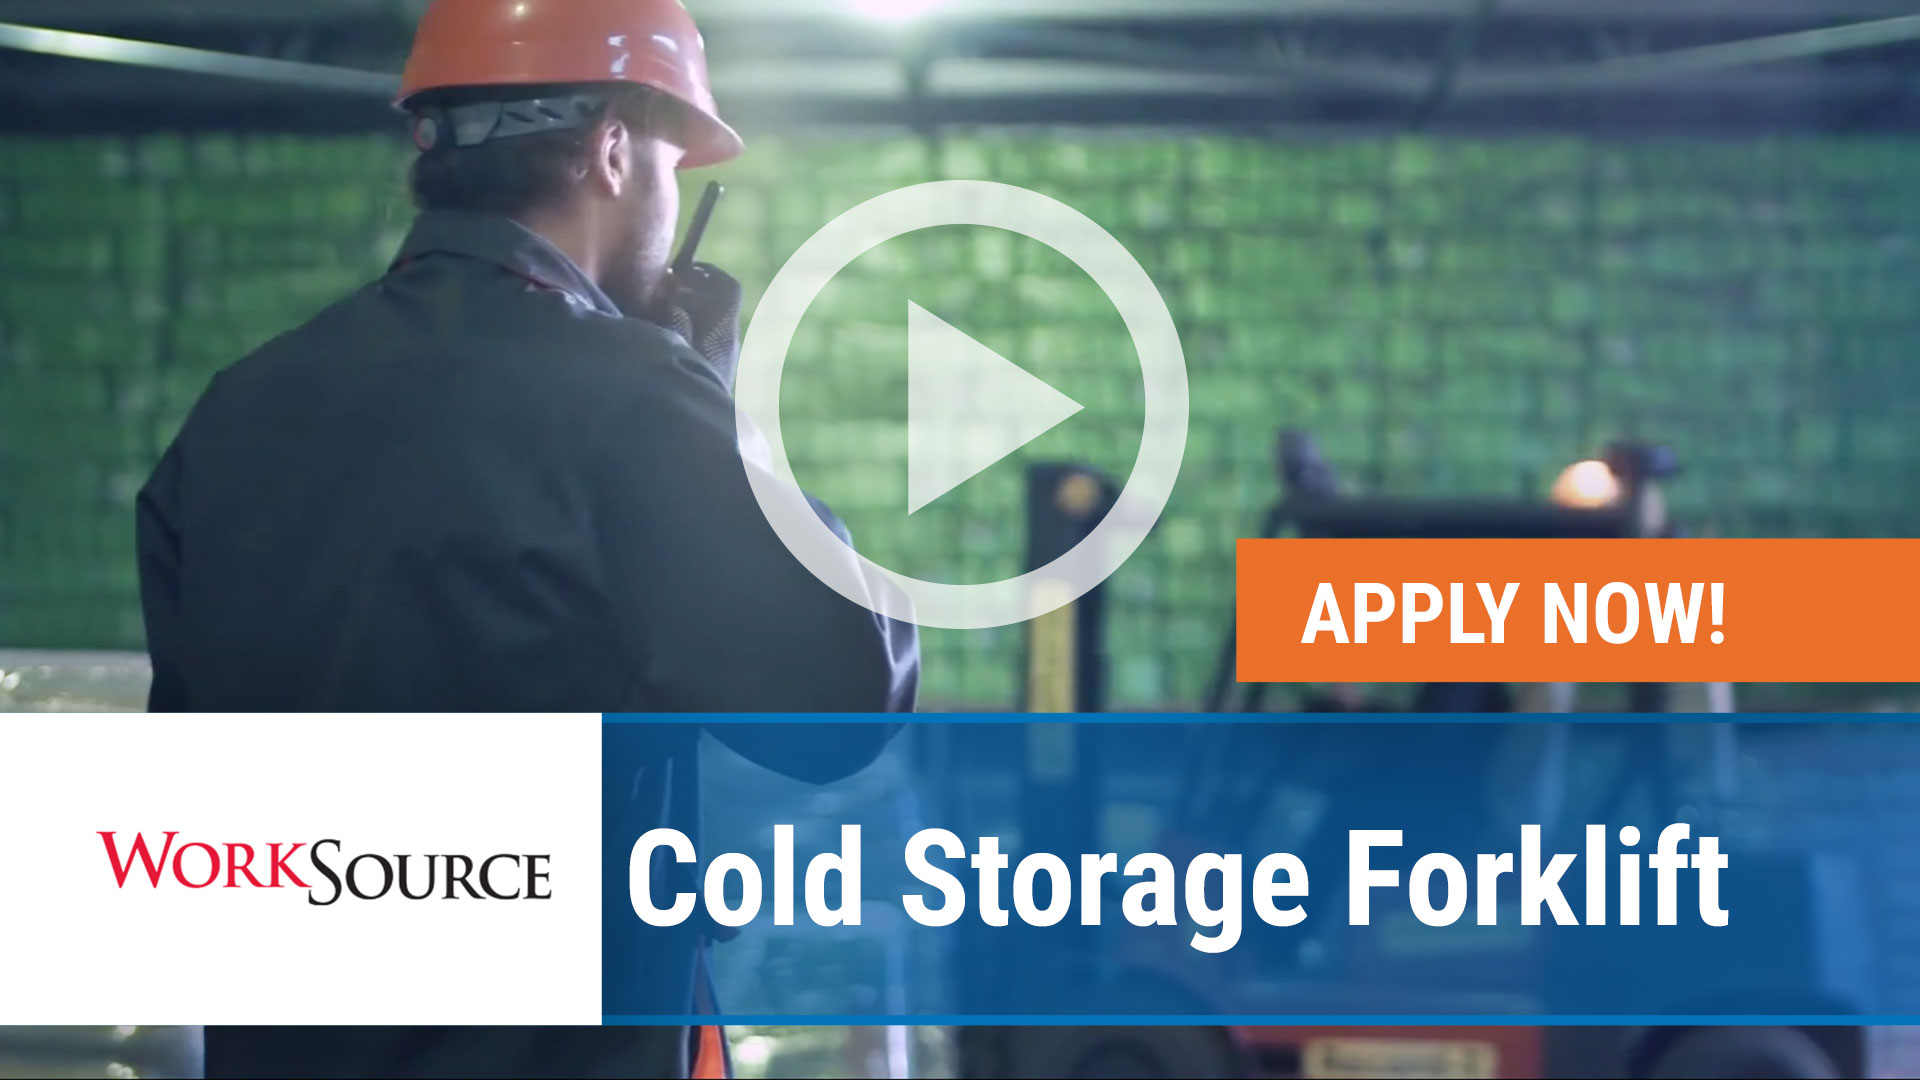 Watch our careers video for available job opening WS Cold Storage Forklift in Fort Smith,   Arkansas